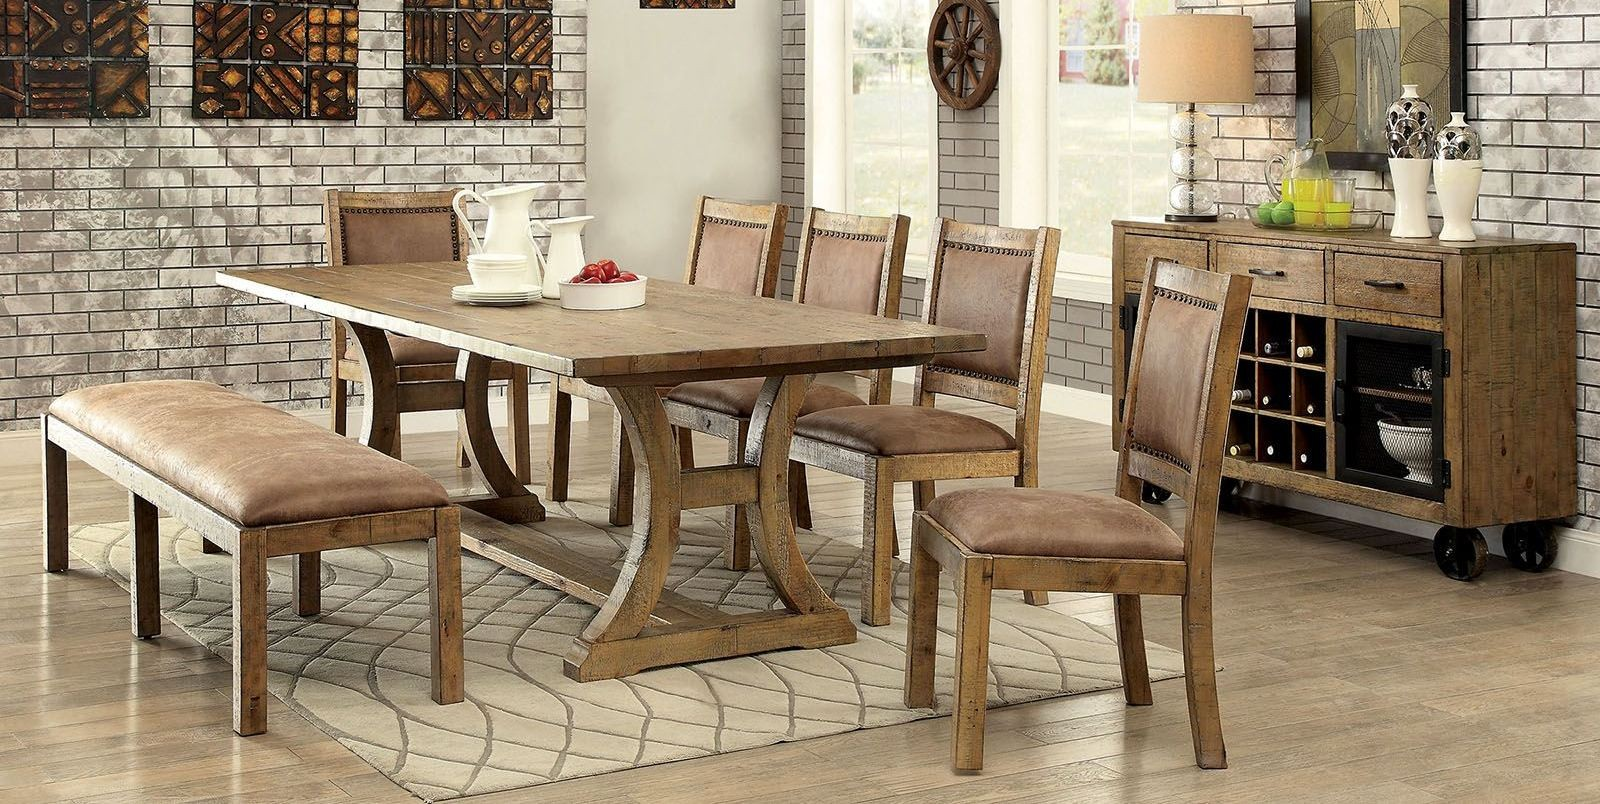 Gianna rustic pine extendable rectangular dining room set for Furniture collection